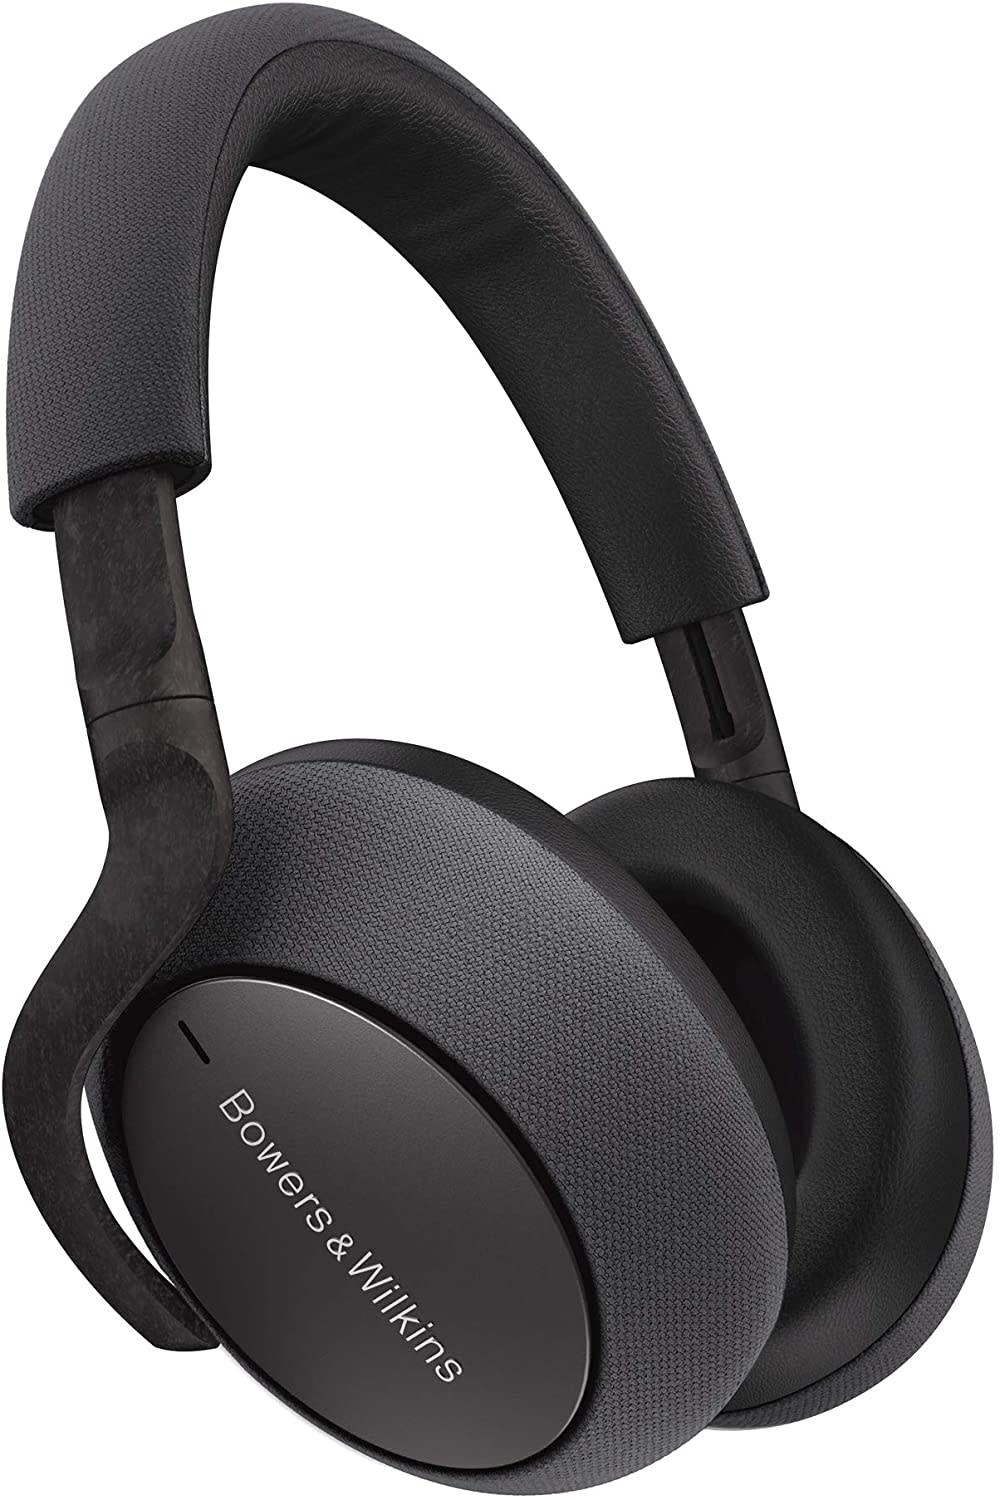 the bowers and wilkins px7